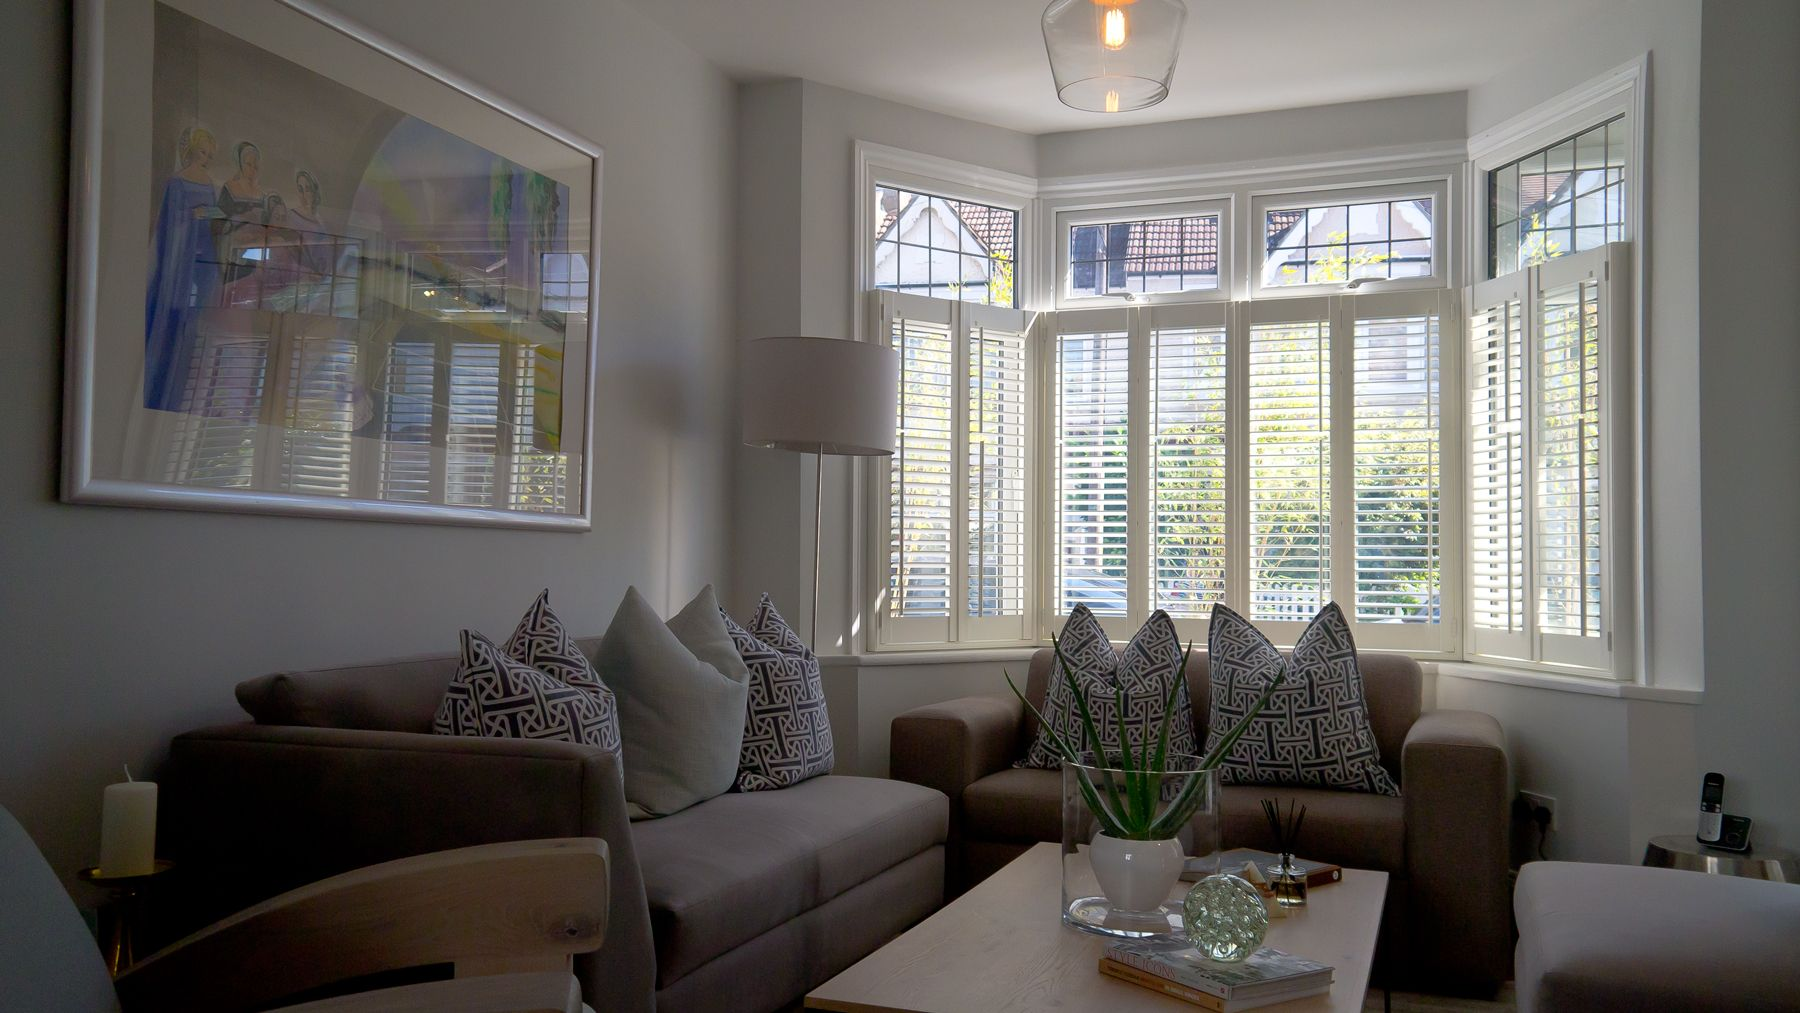 Cafe Style Shutters in Hardwood.   Cafe style shutters ...